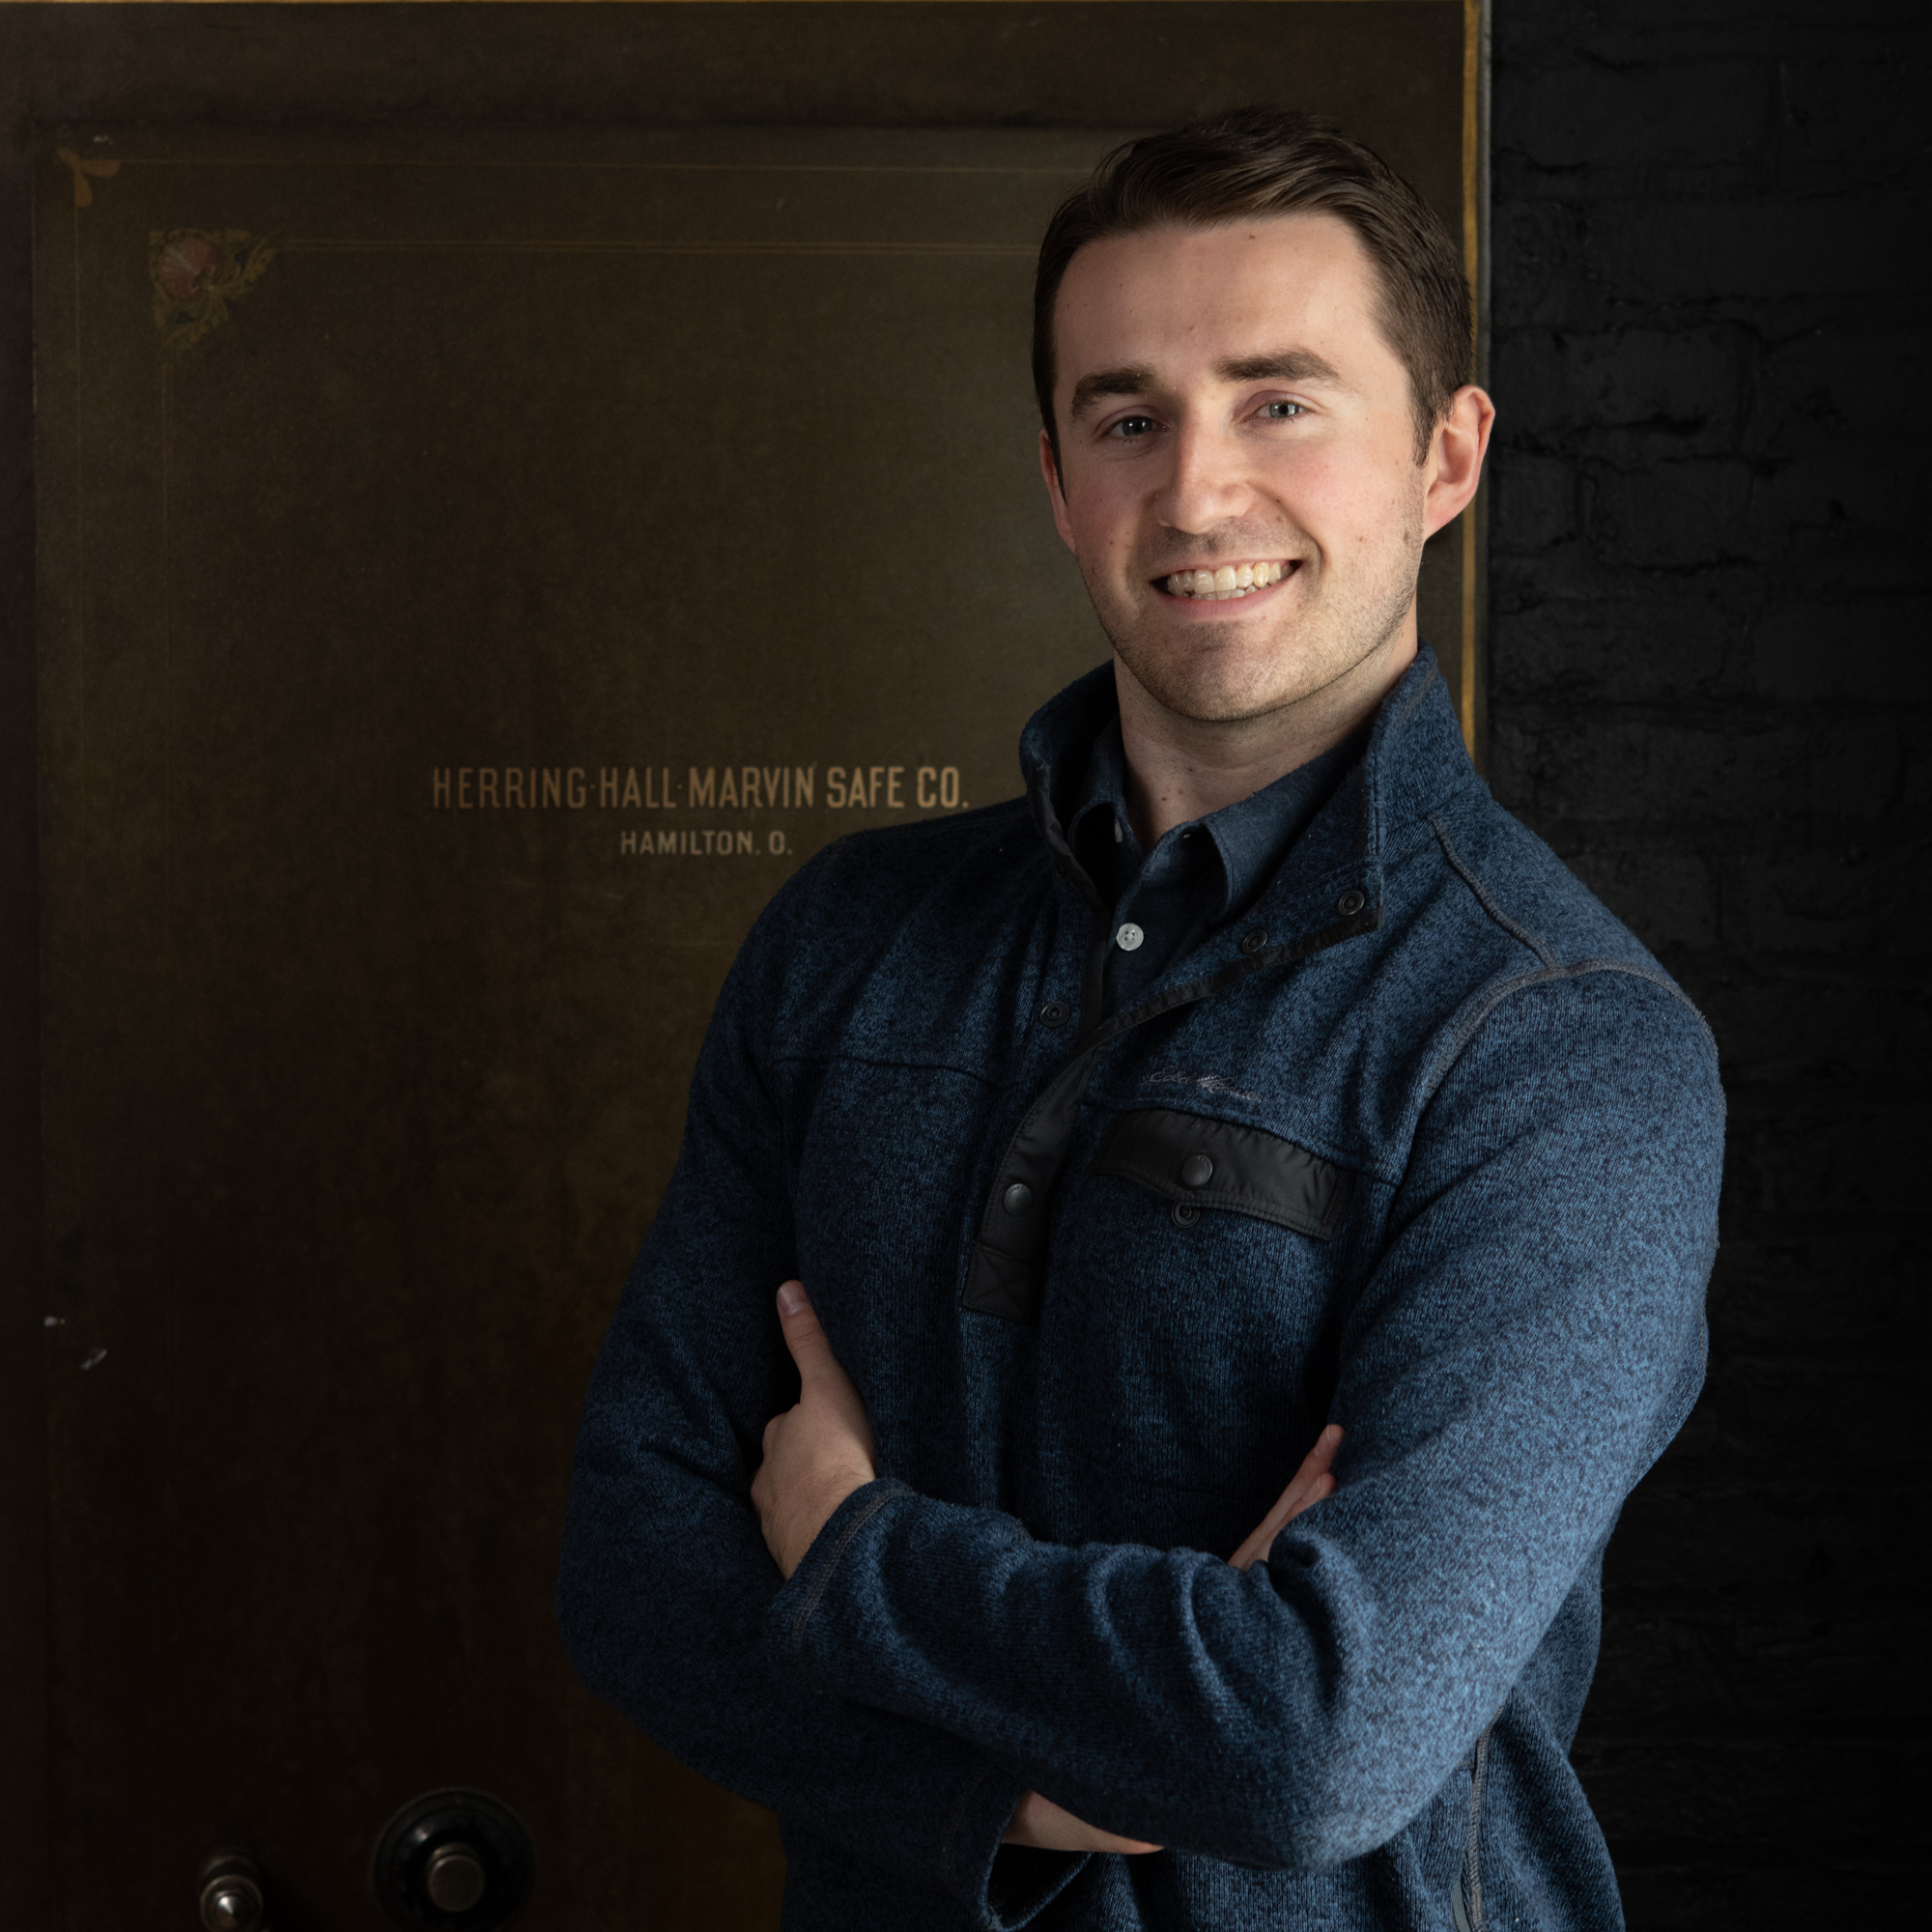 MATT DOWNEY - MARKETING MANAGER